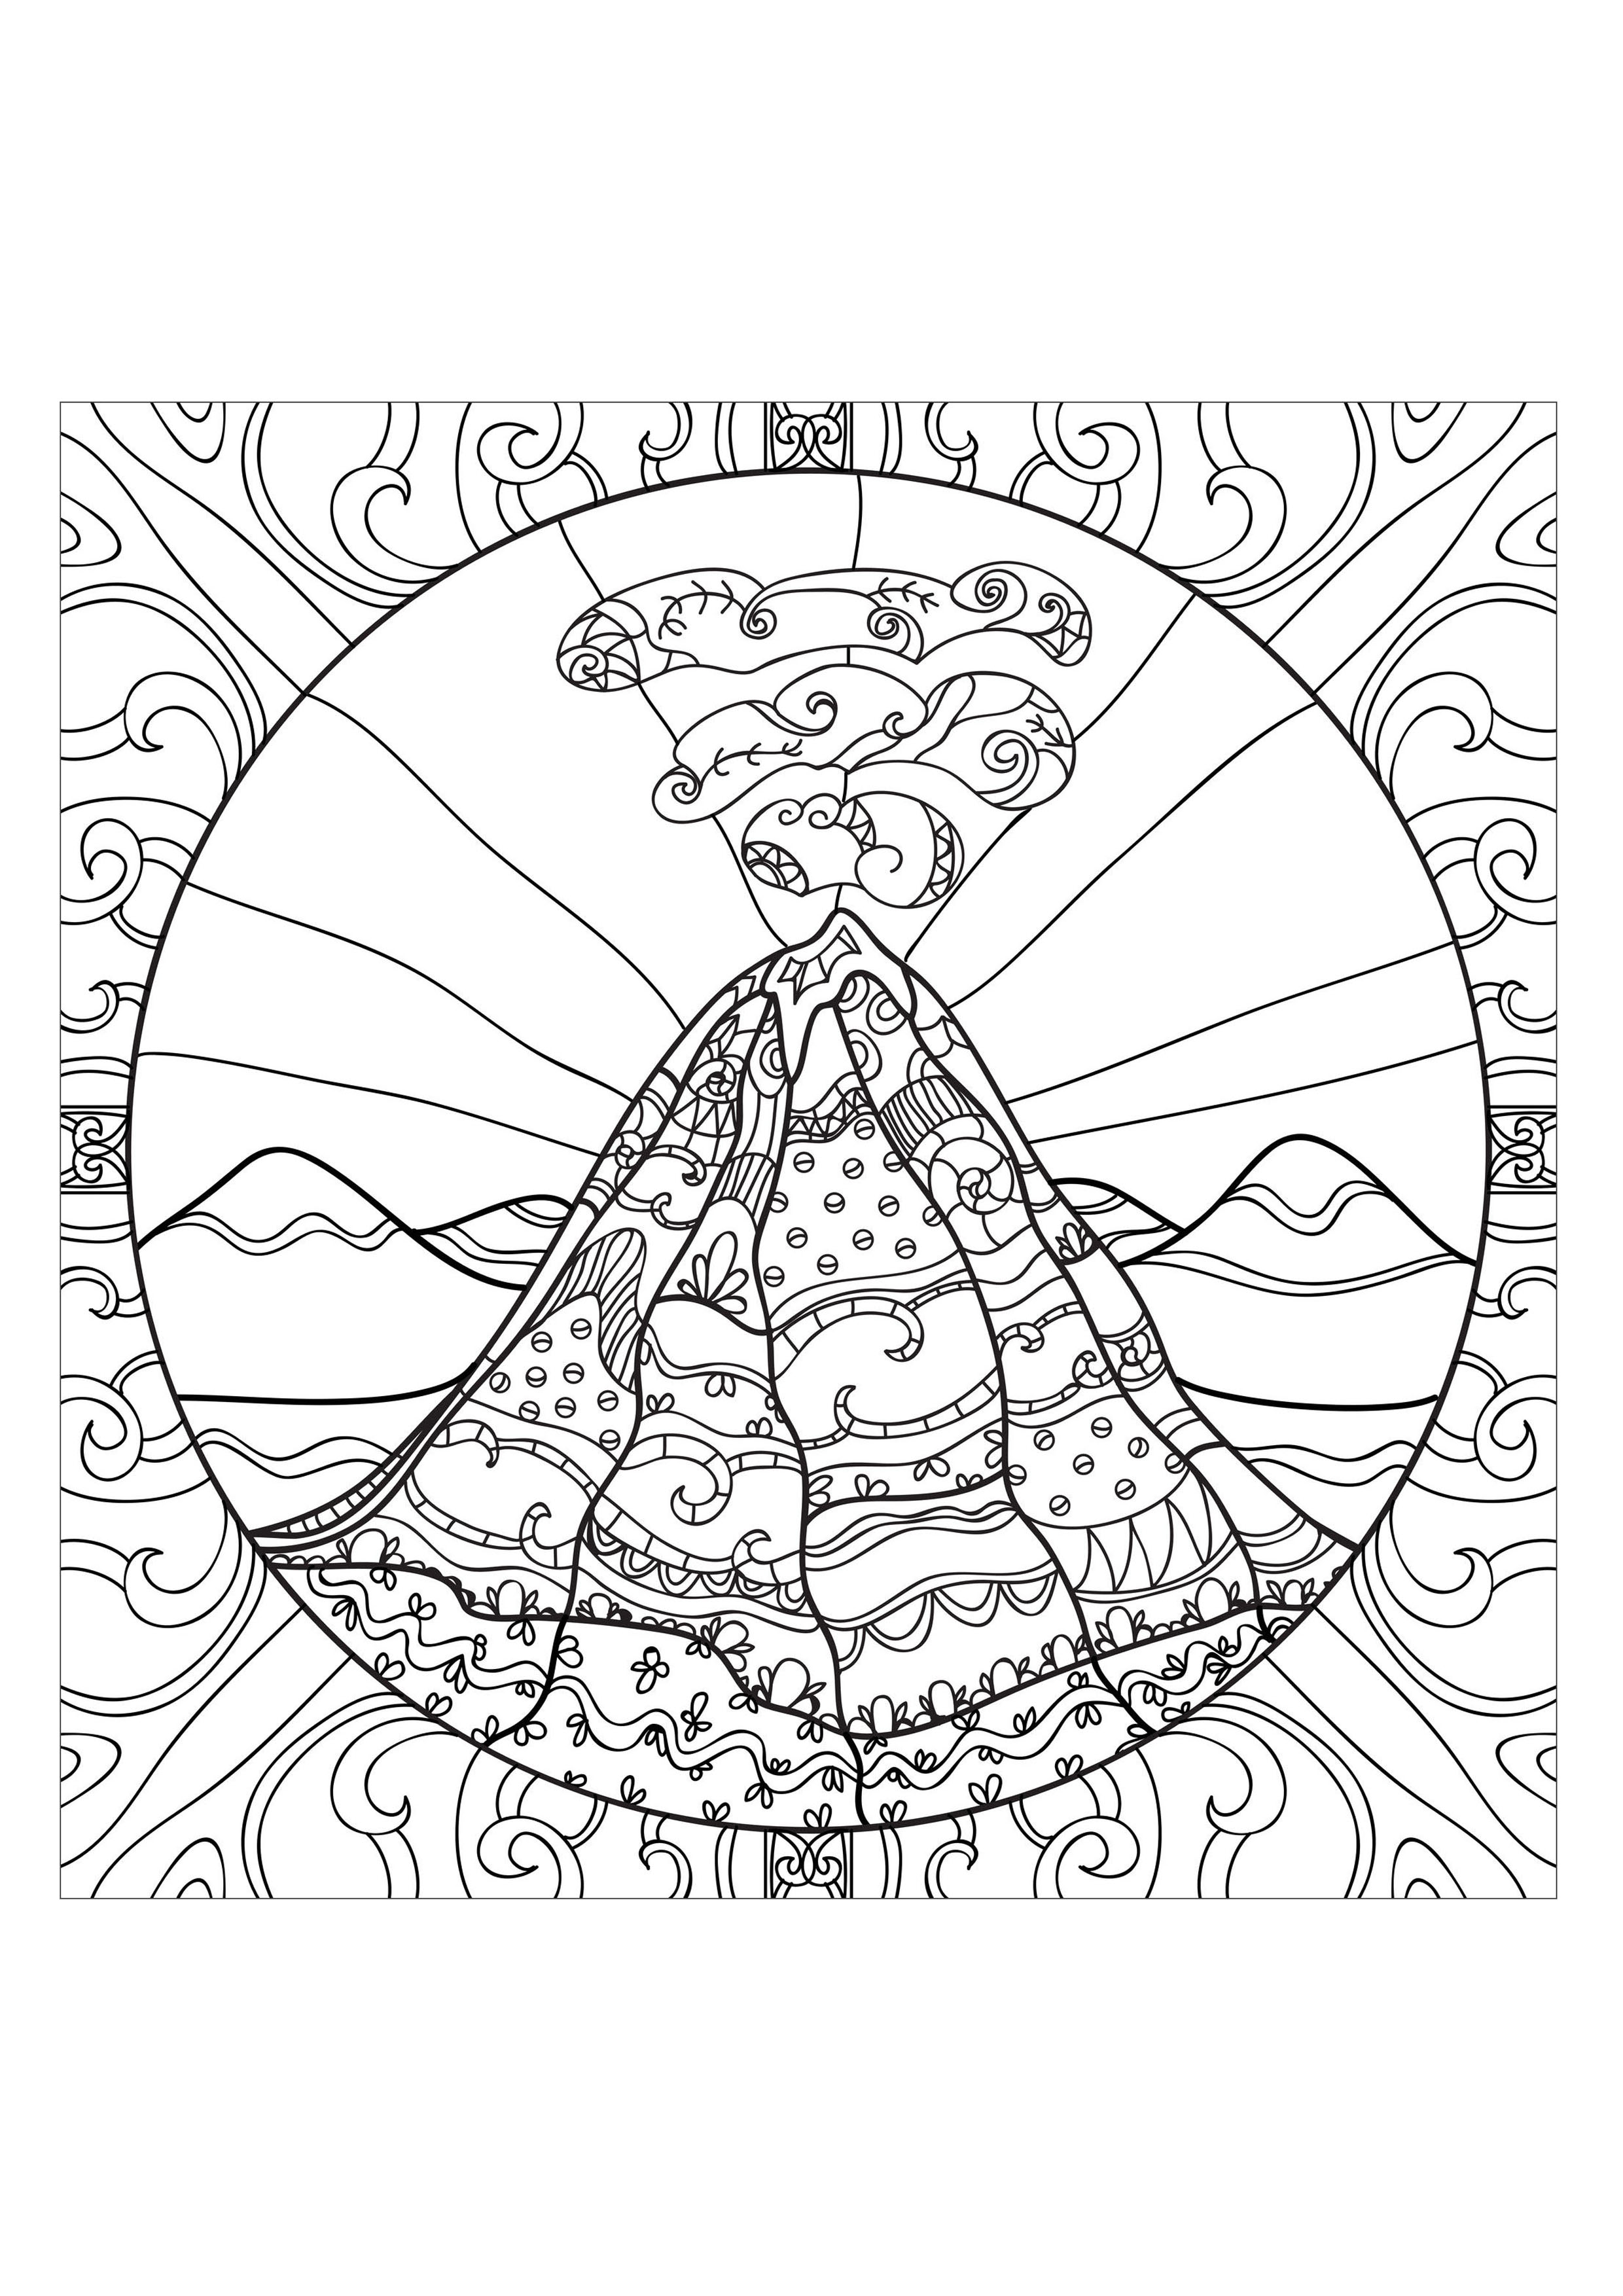 2480x3508 Nice Idea Volcano Coloring Pages To Print Printable For Kids